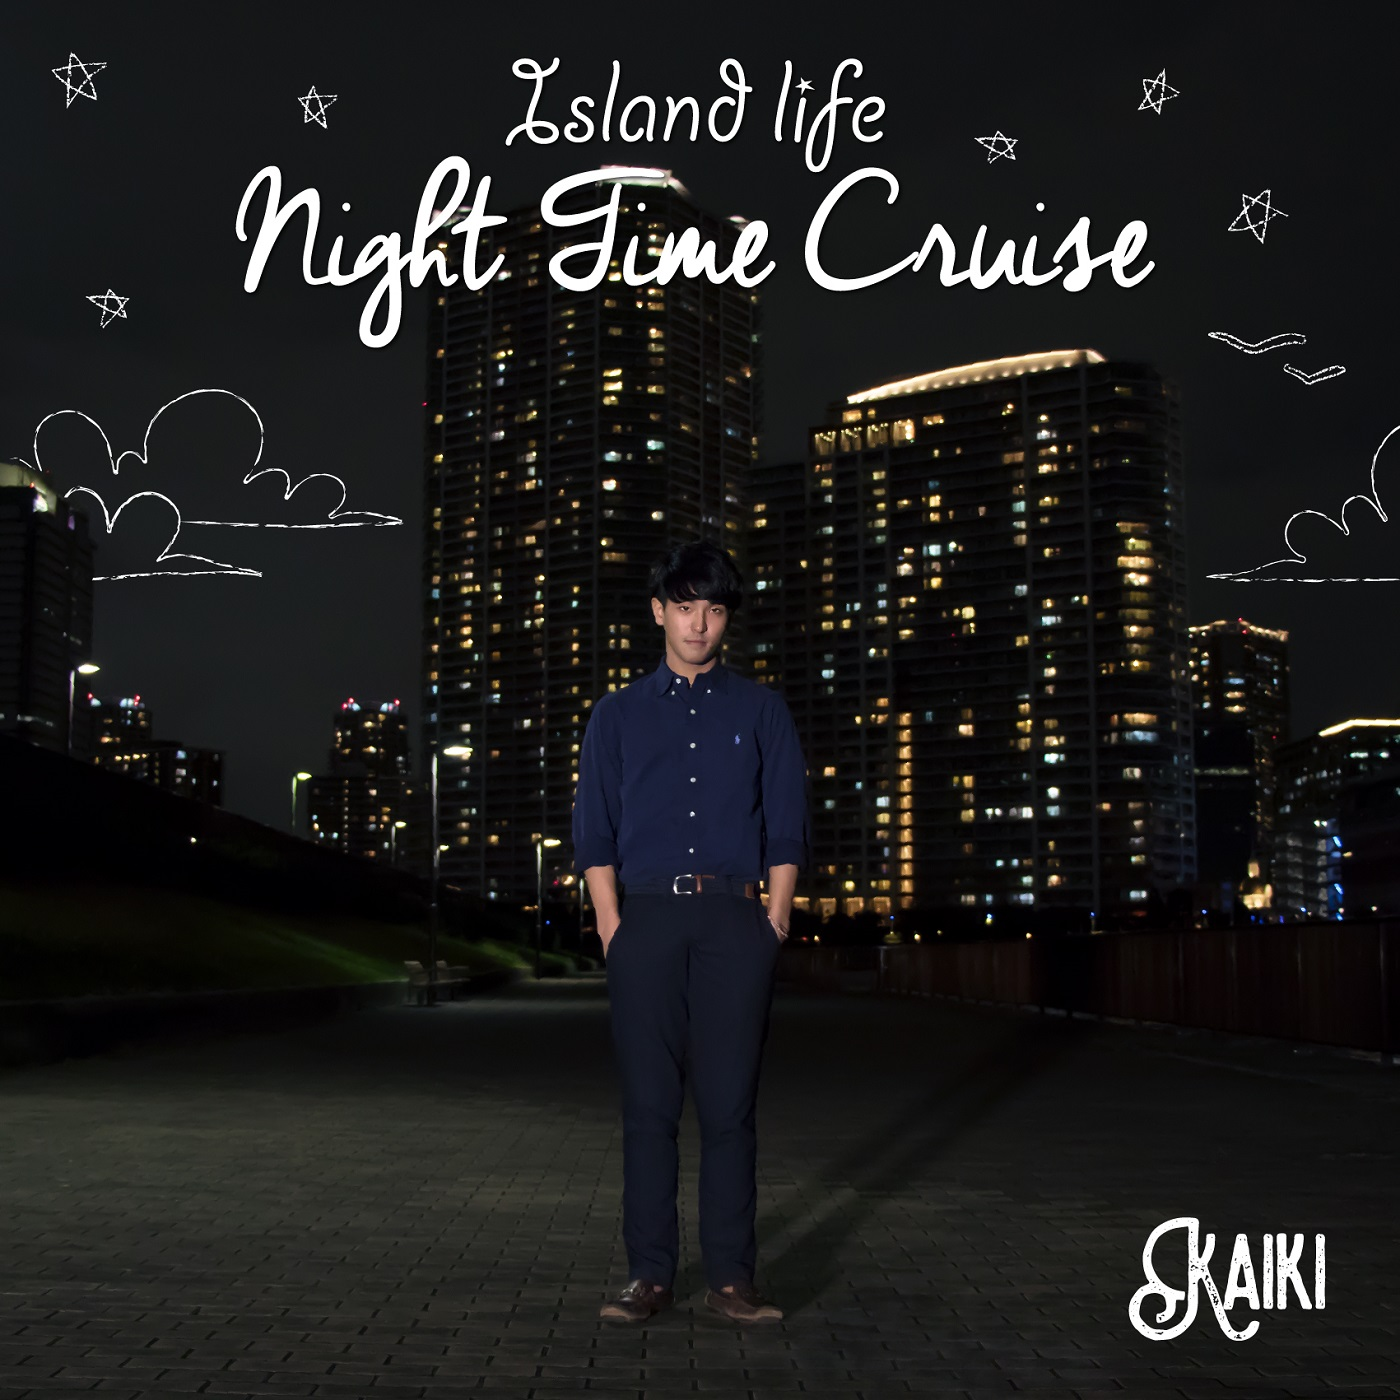 KAIKI_Island Life -Night Time Cruise-